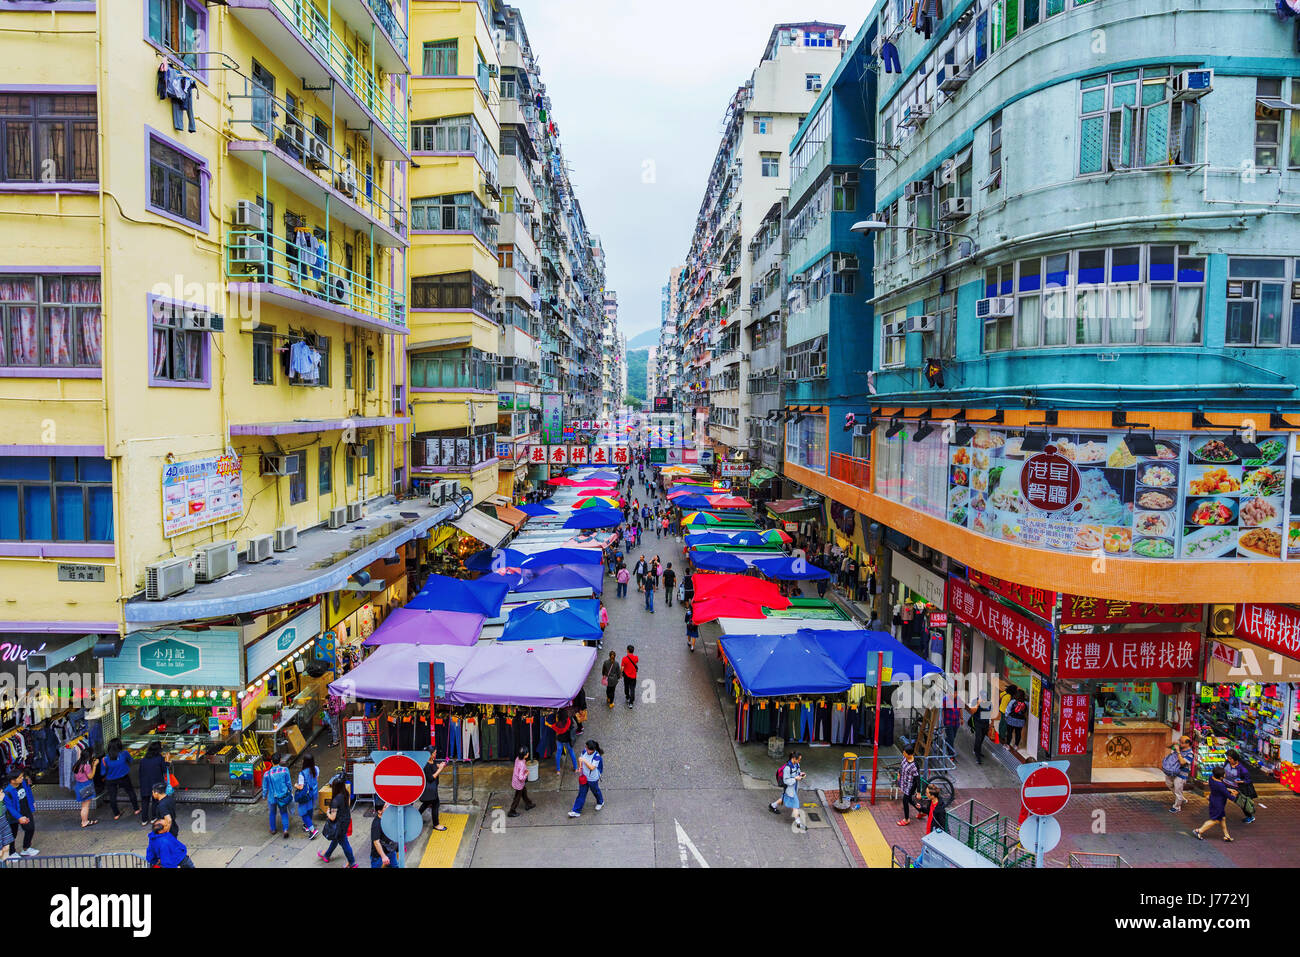 HONG KONG, CHINA - APRIL 24: This is a view of a Fa Yuen street market a local street market and popular travel - Stock Image